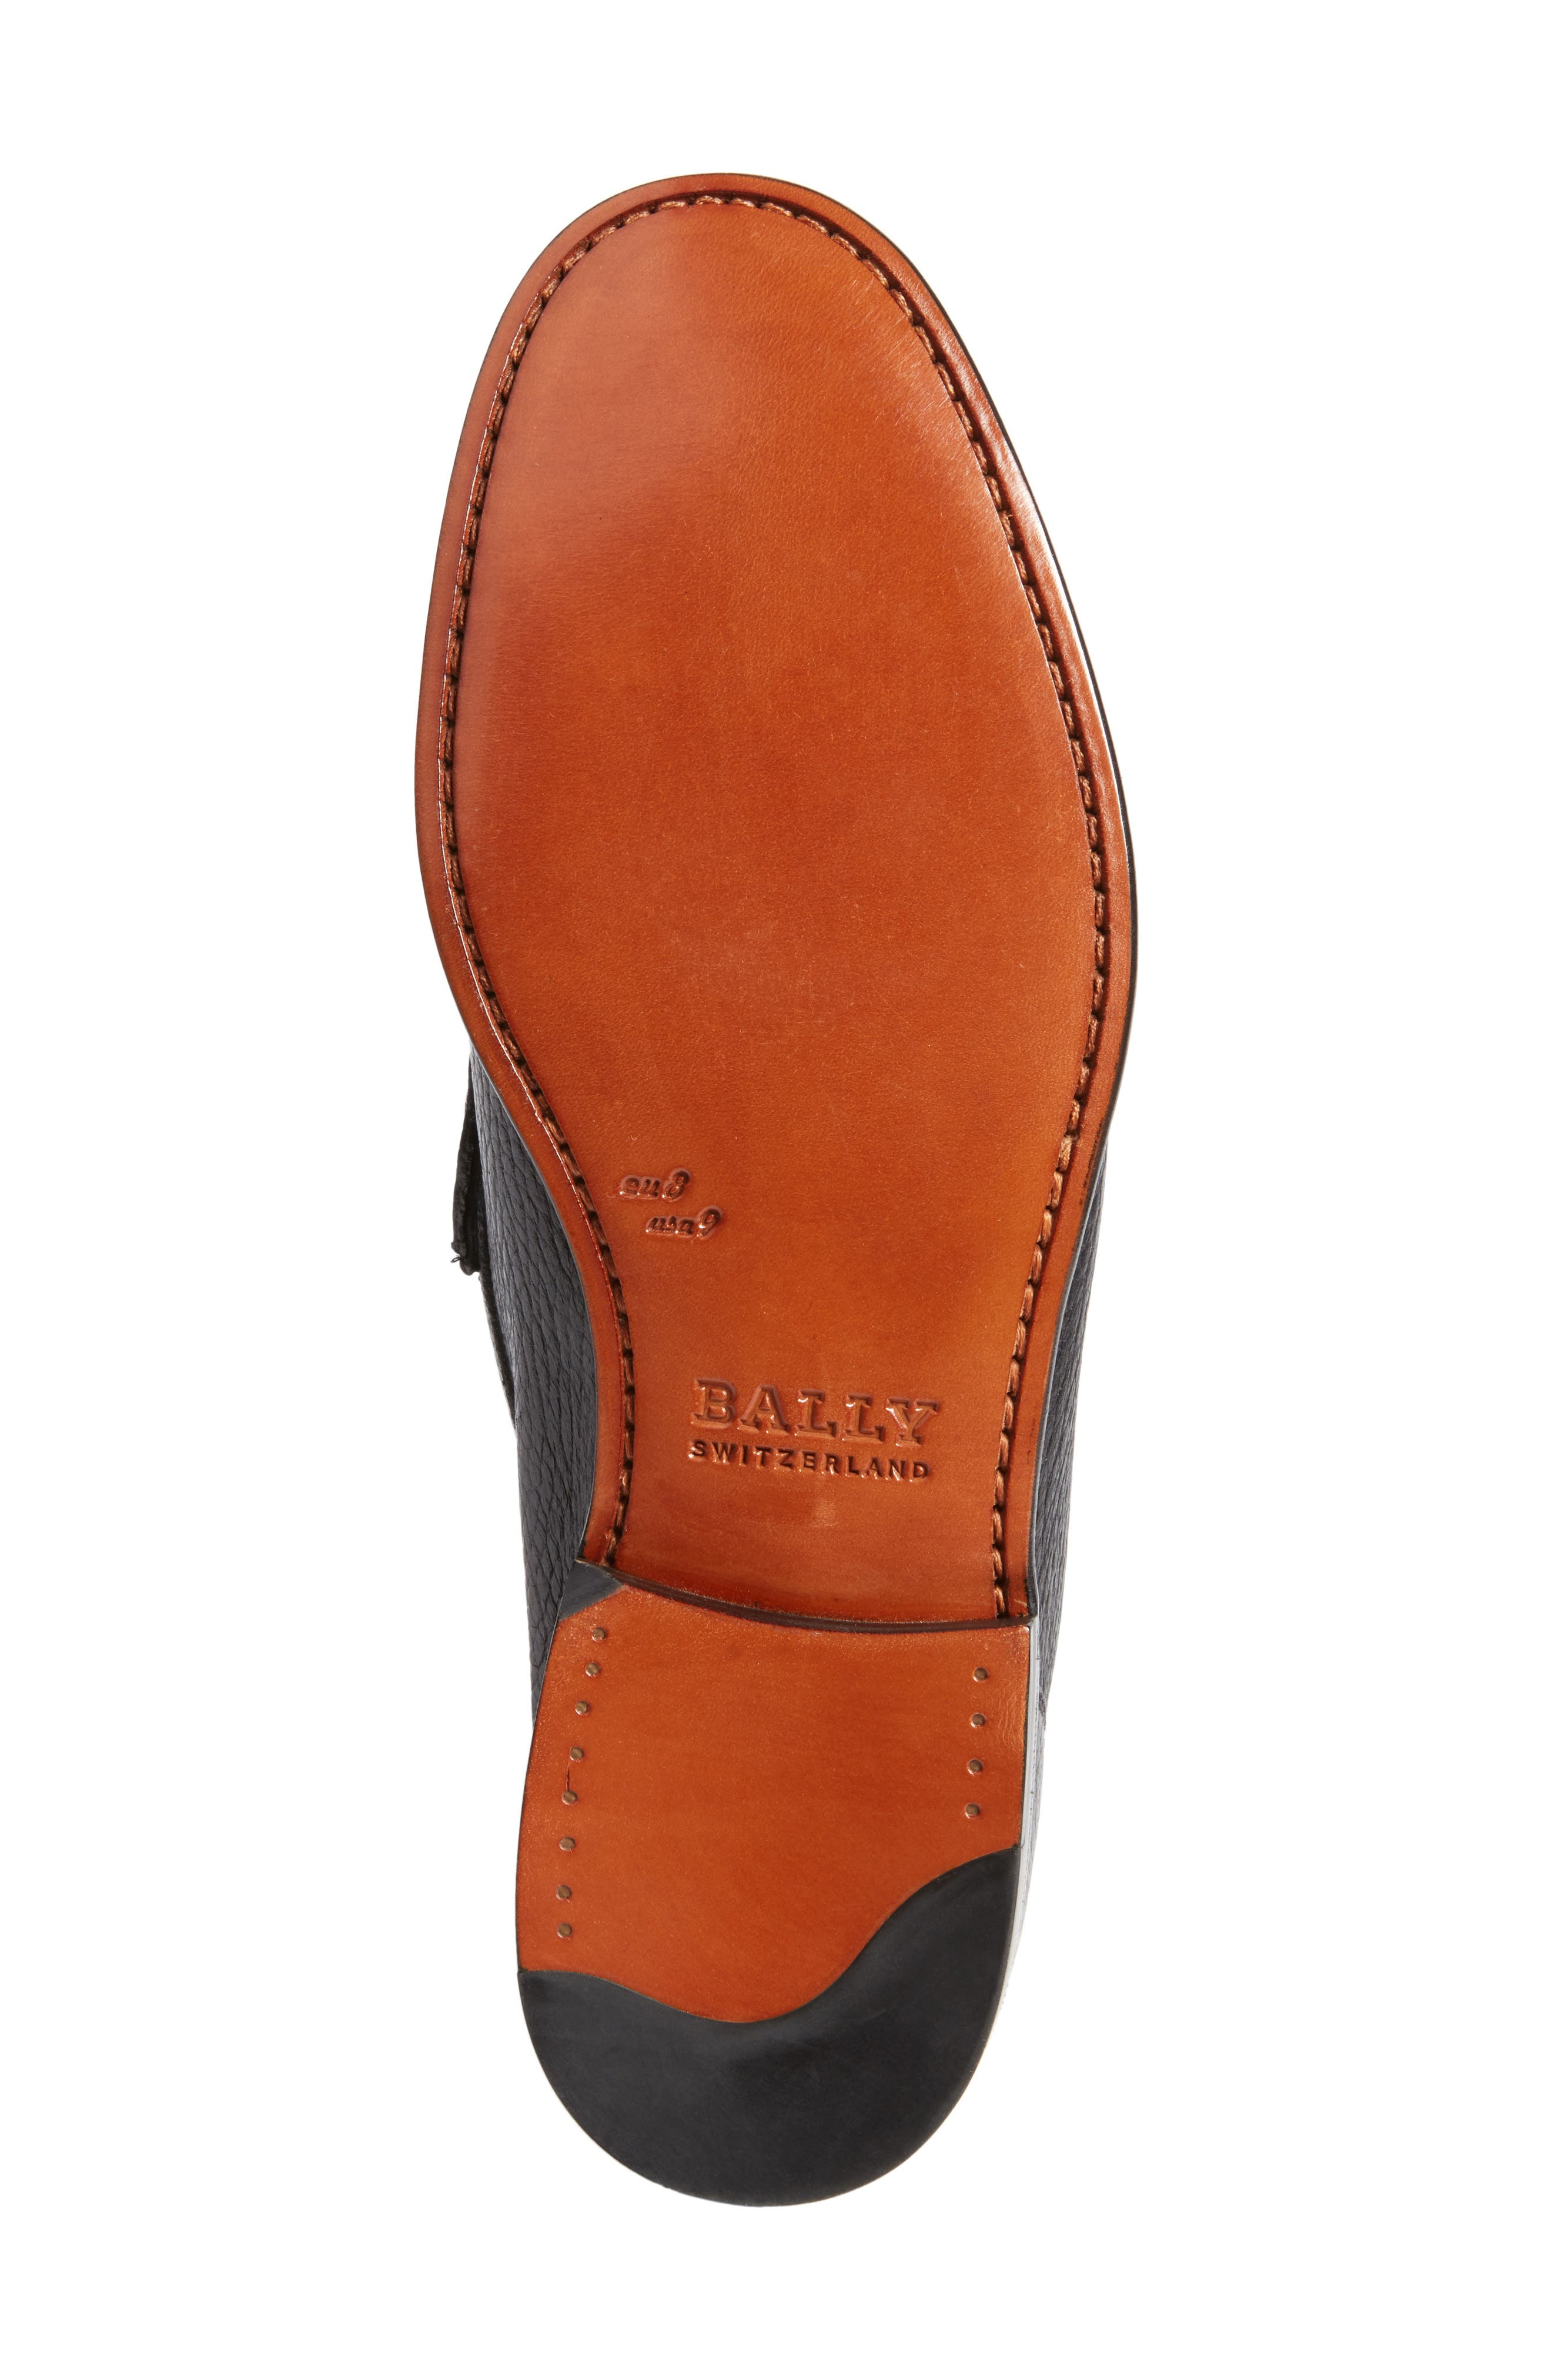 Suver Loafer,                             Alternate thumbnail 6, color,                             001